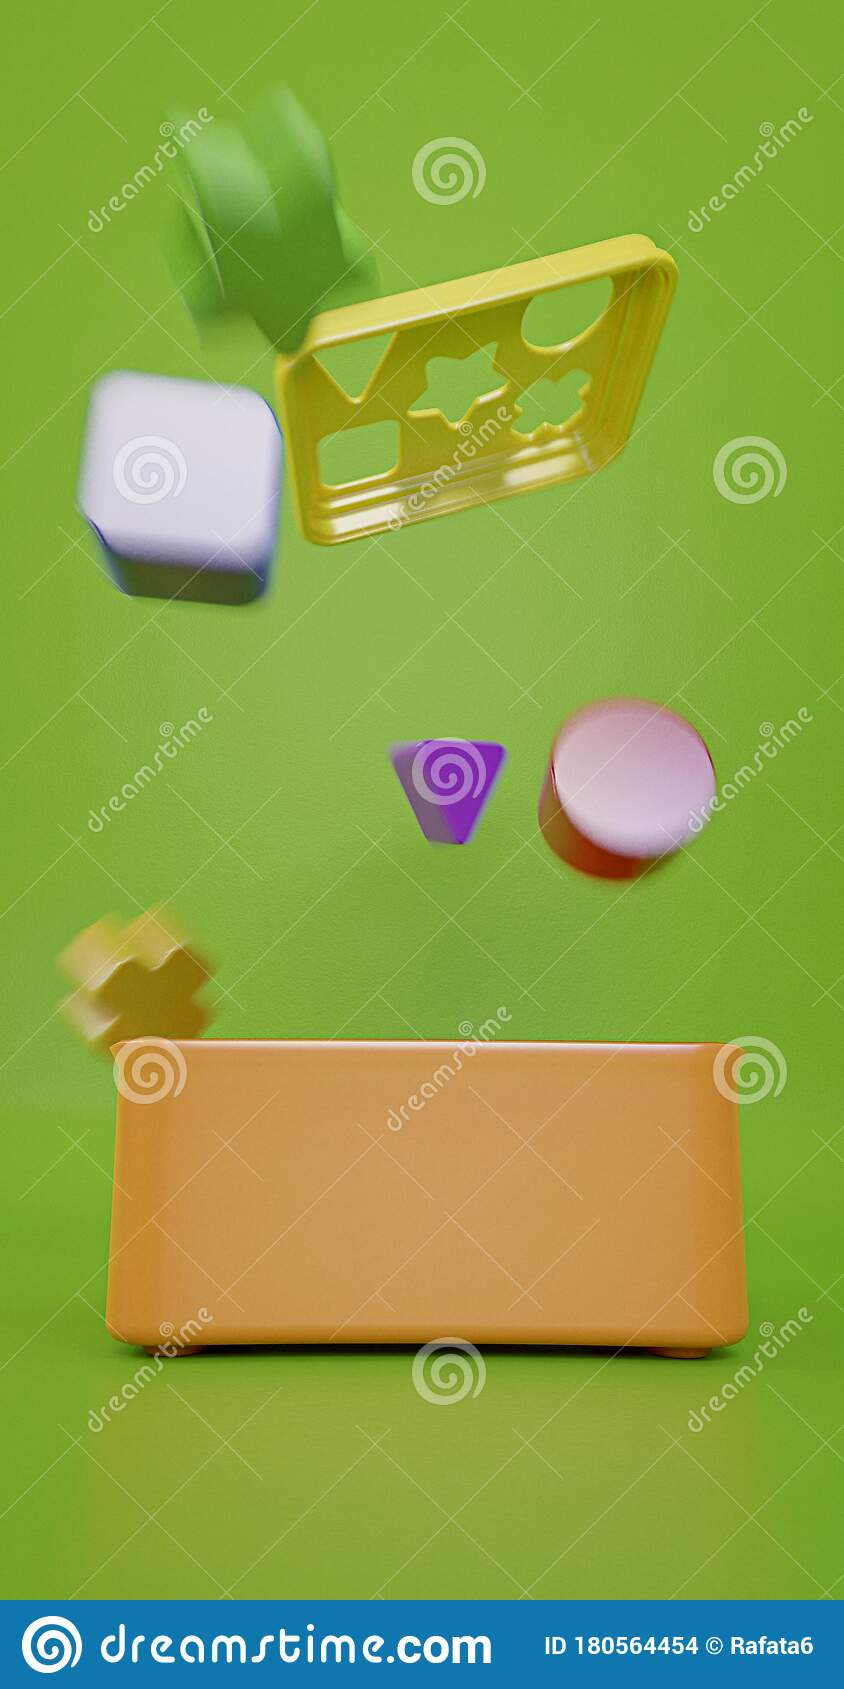 Colorful Geometry Toy Blocks Getting Out Of Its Box Children Game 3d Illustration Stock Illustration Illustration Of Attention Geometry 180564454